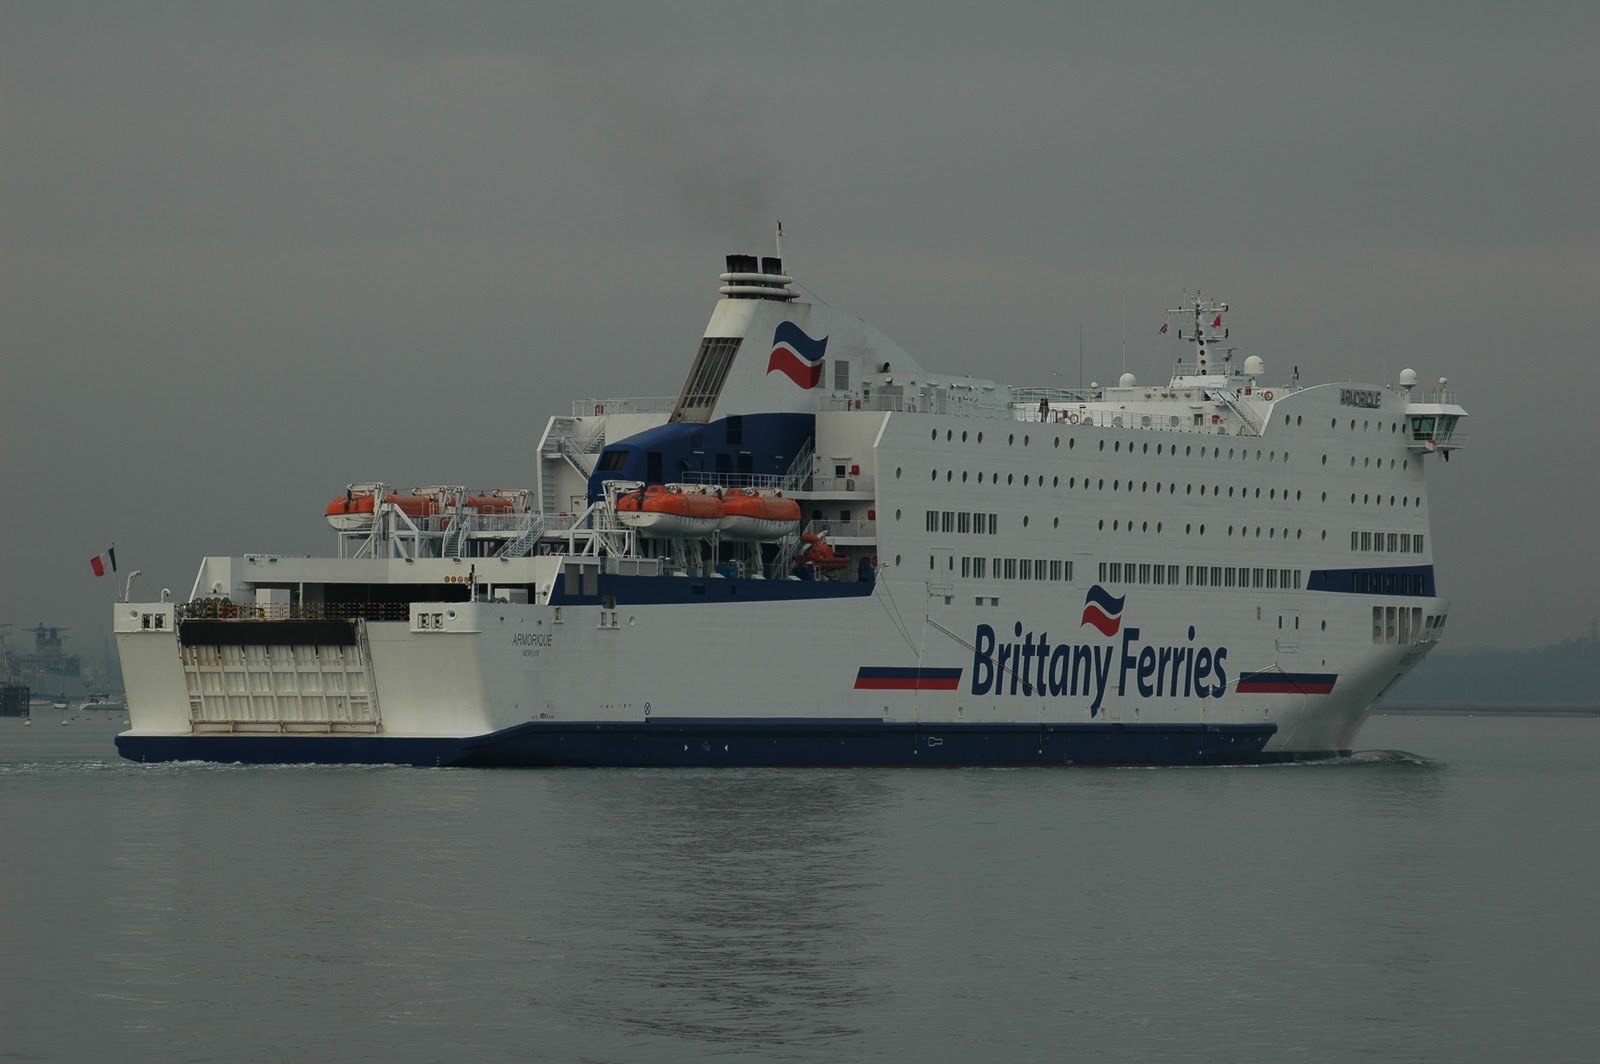 brittany ferries armorique at portsmouth yesterday. Black Bedroom Furniture Sets. Home Design Ideas